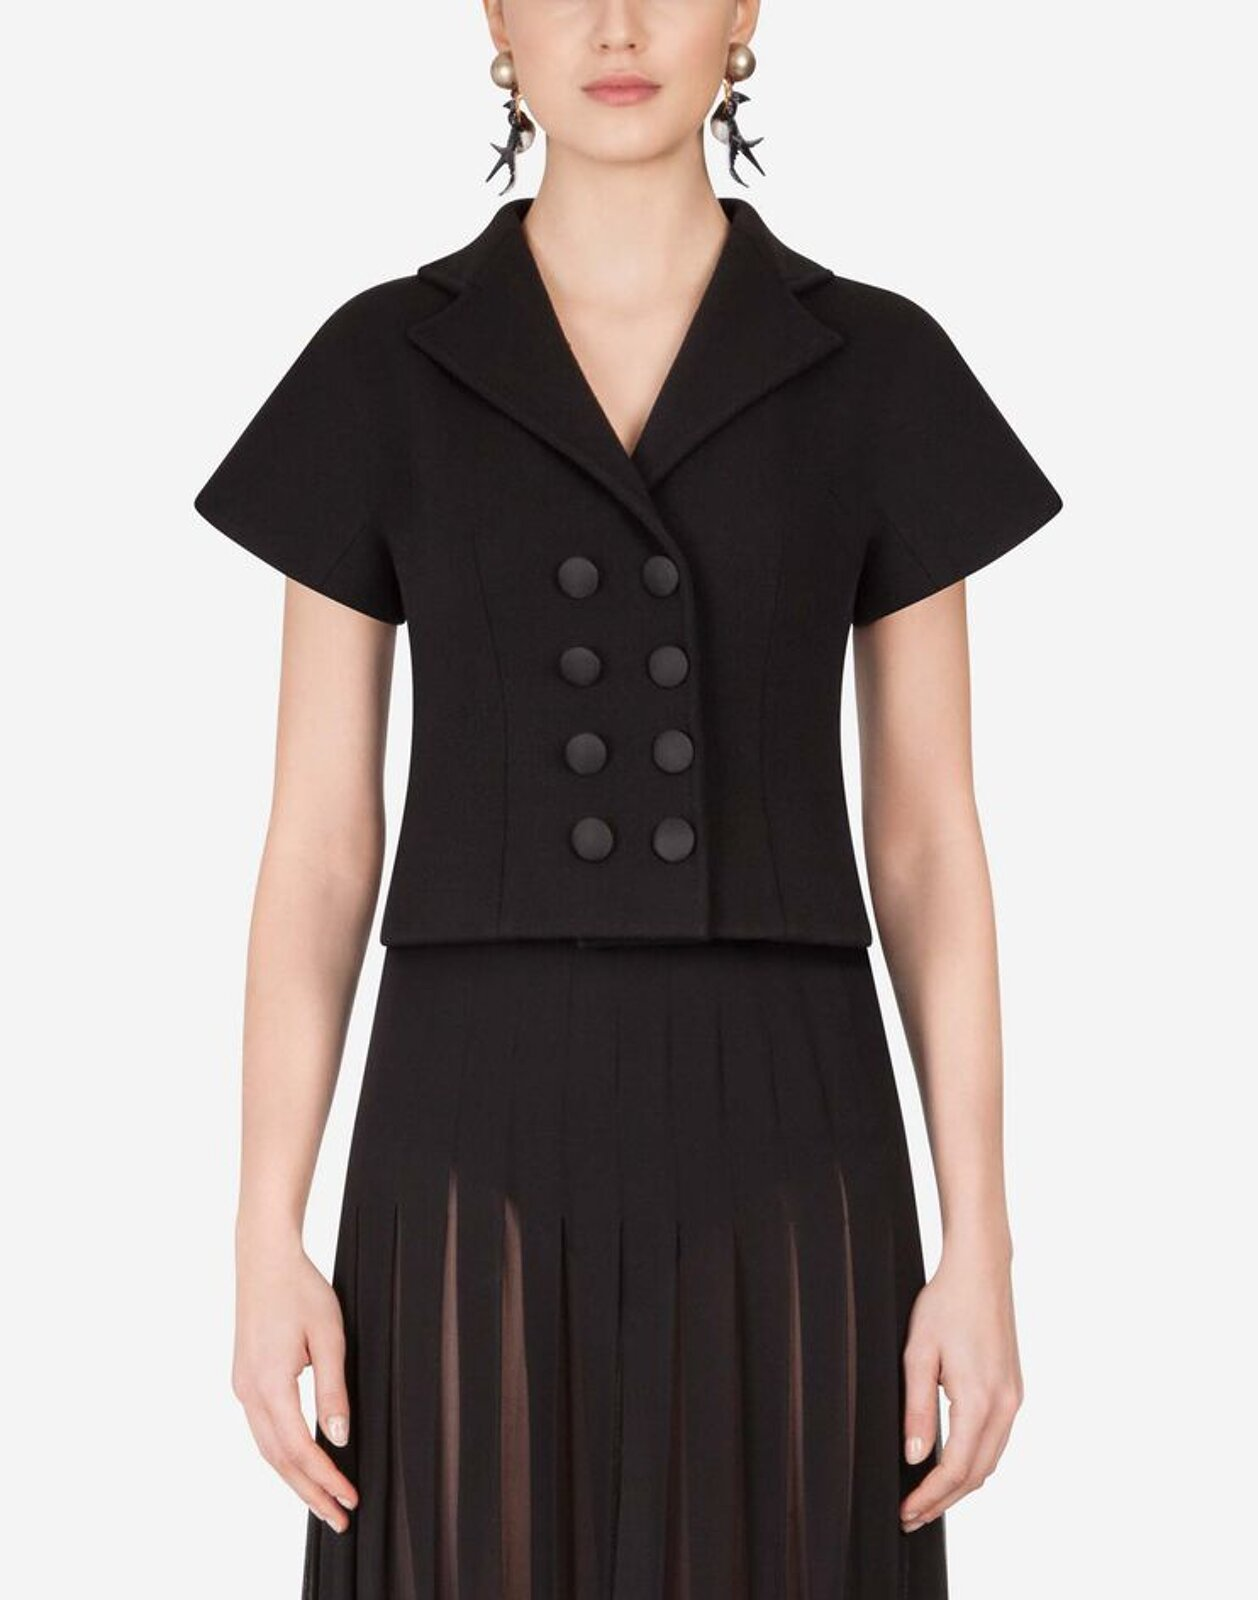 Double-Breasted Short Sleeved Wool Jacket - Dolce & Gabbana